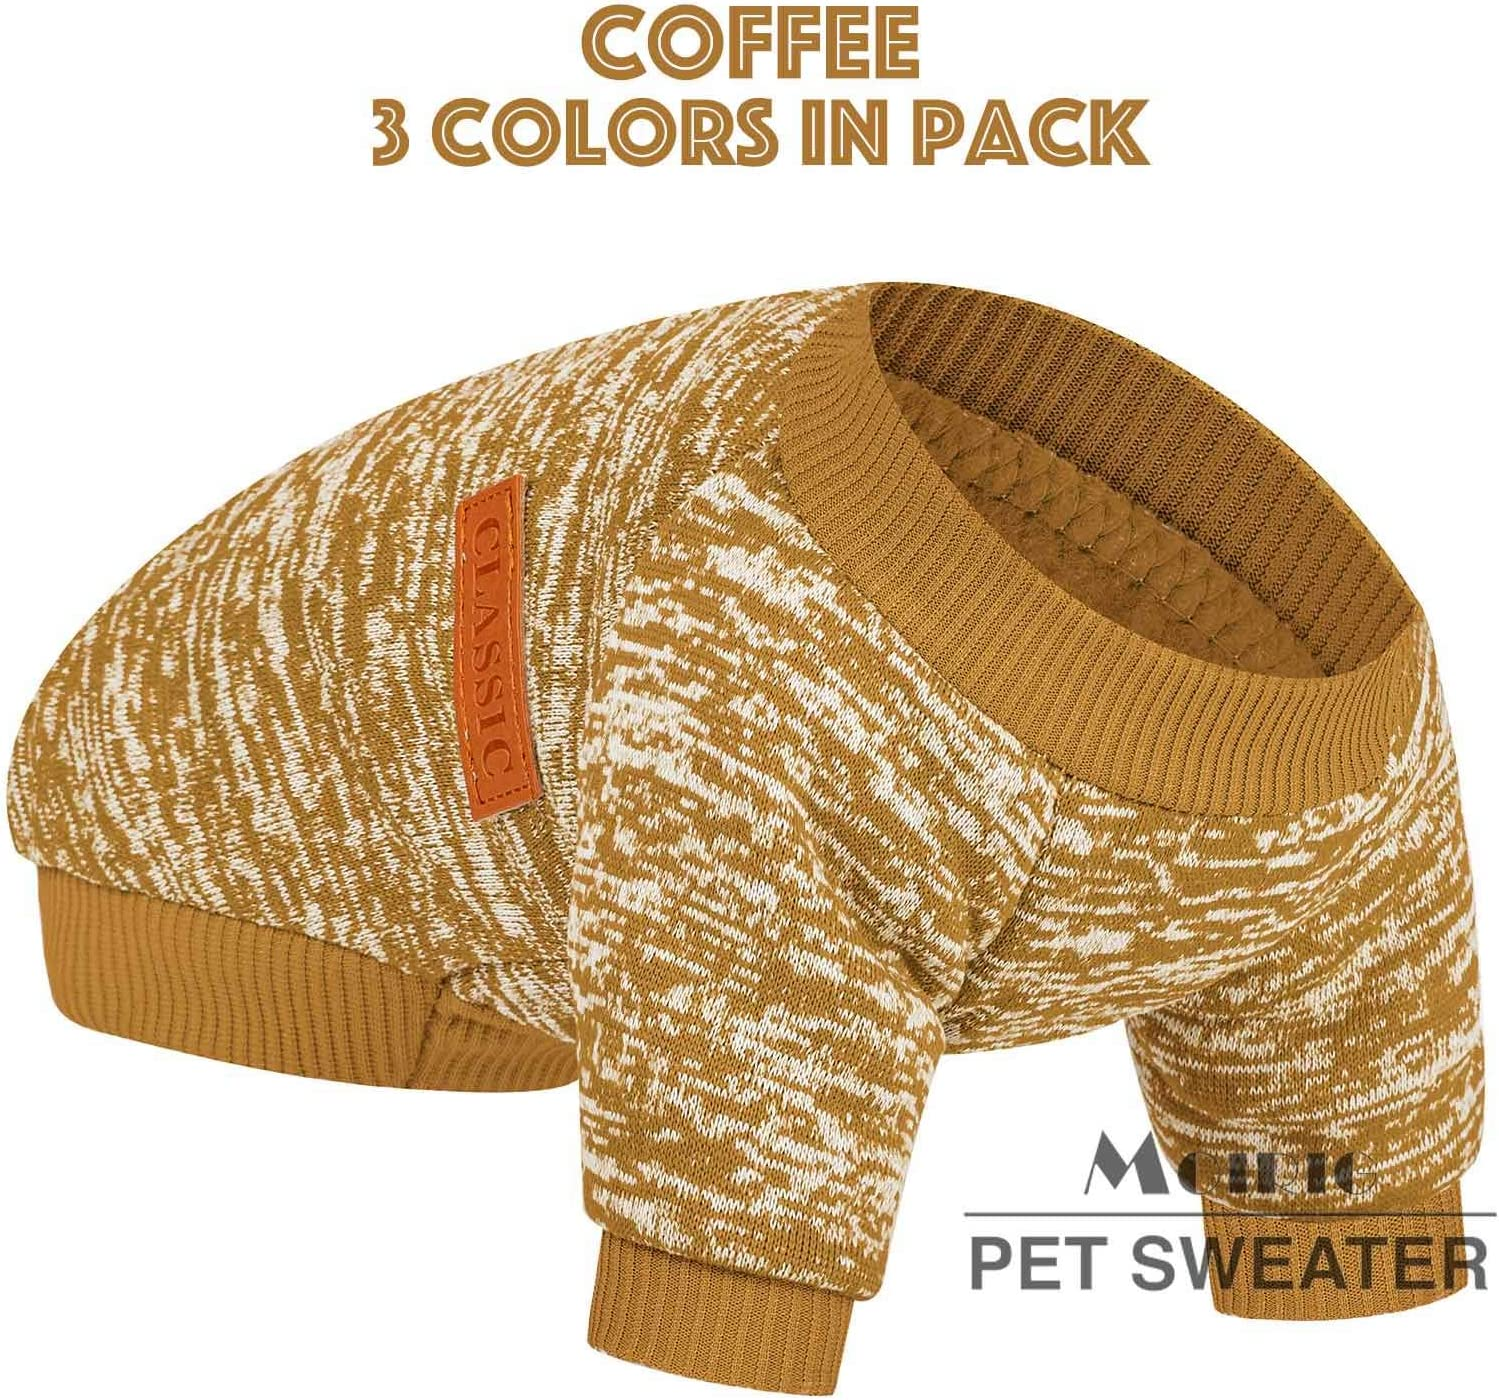 Dog Sweater for Small Medium Large Dog or Cat Small Dogs Girl or Boy Dog Sweaters Shirt Jacket Vest Coat for Winter Christmas Warm Soft Pet Clothes for Puppy S, Pink+Purple+HotPink